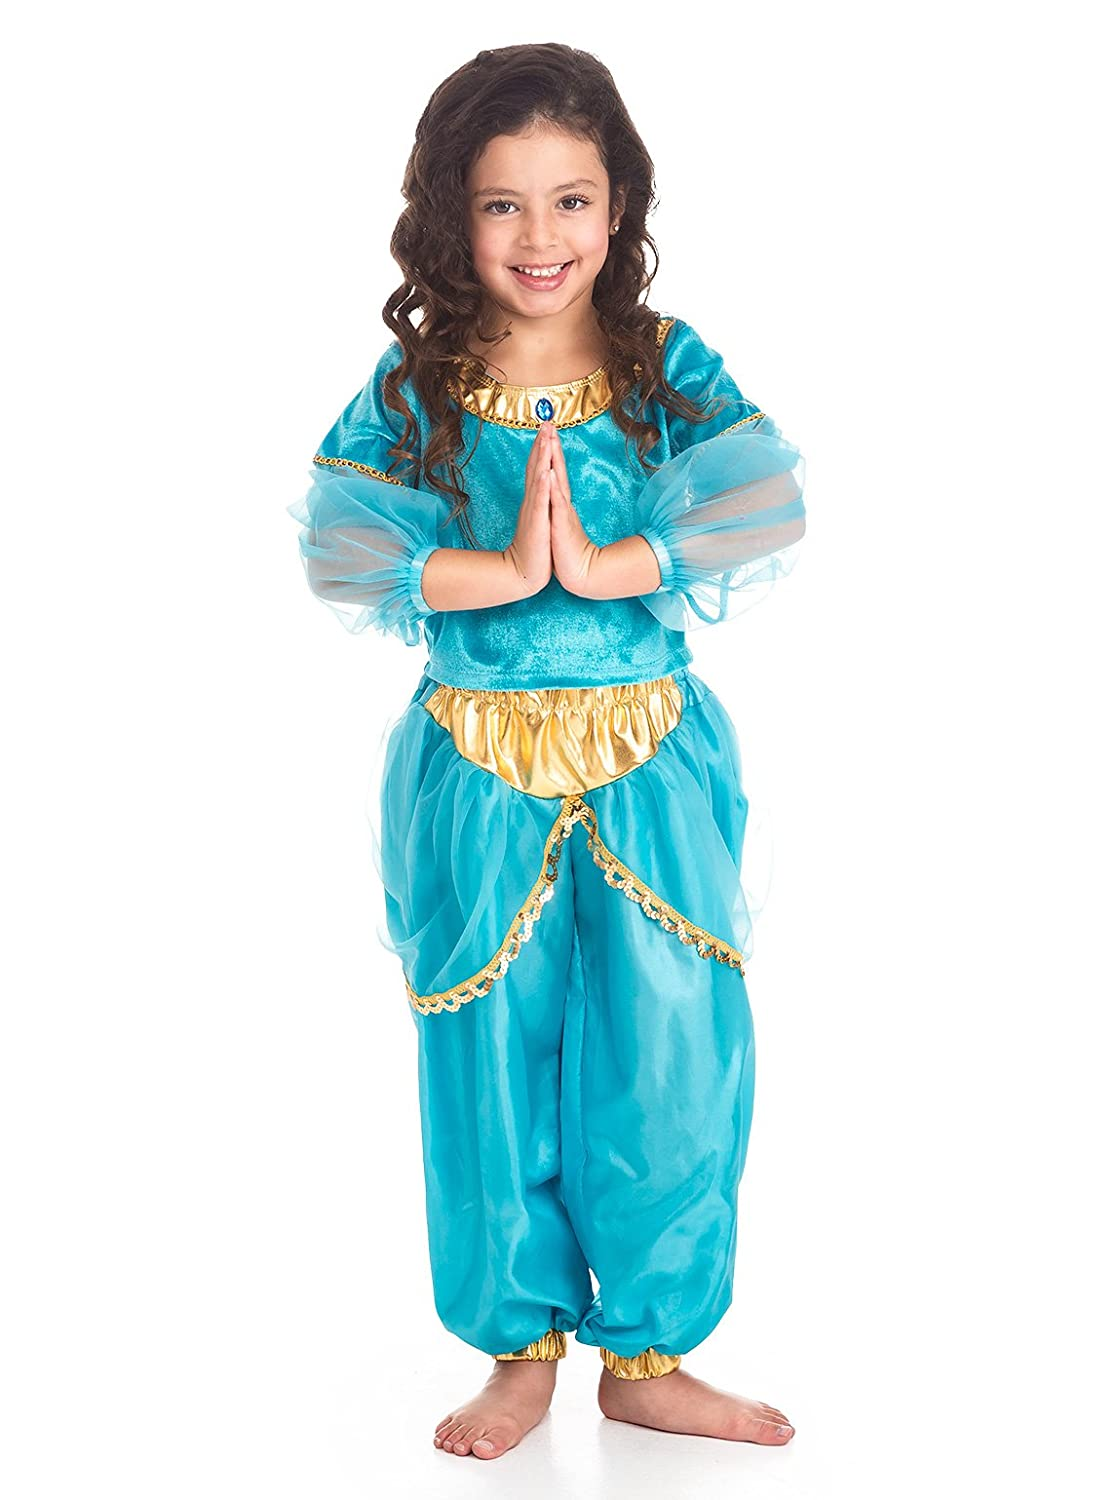 Little Adventures Arabian Princess Dress Up Costume For Girls